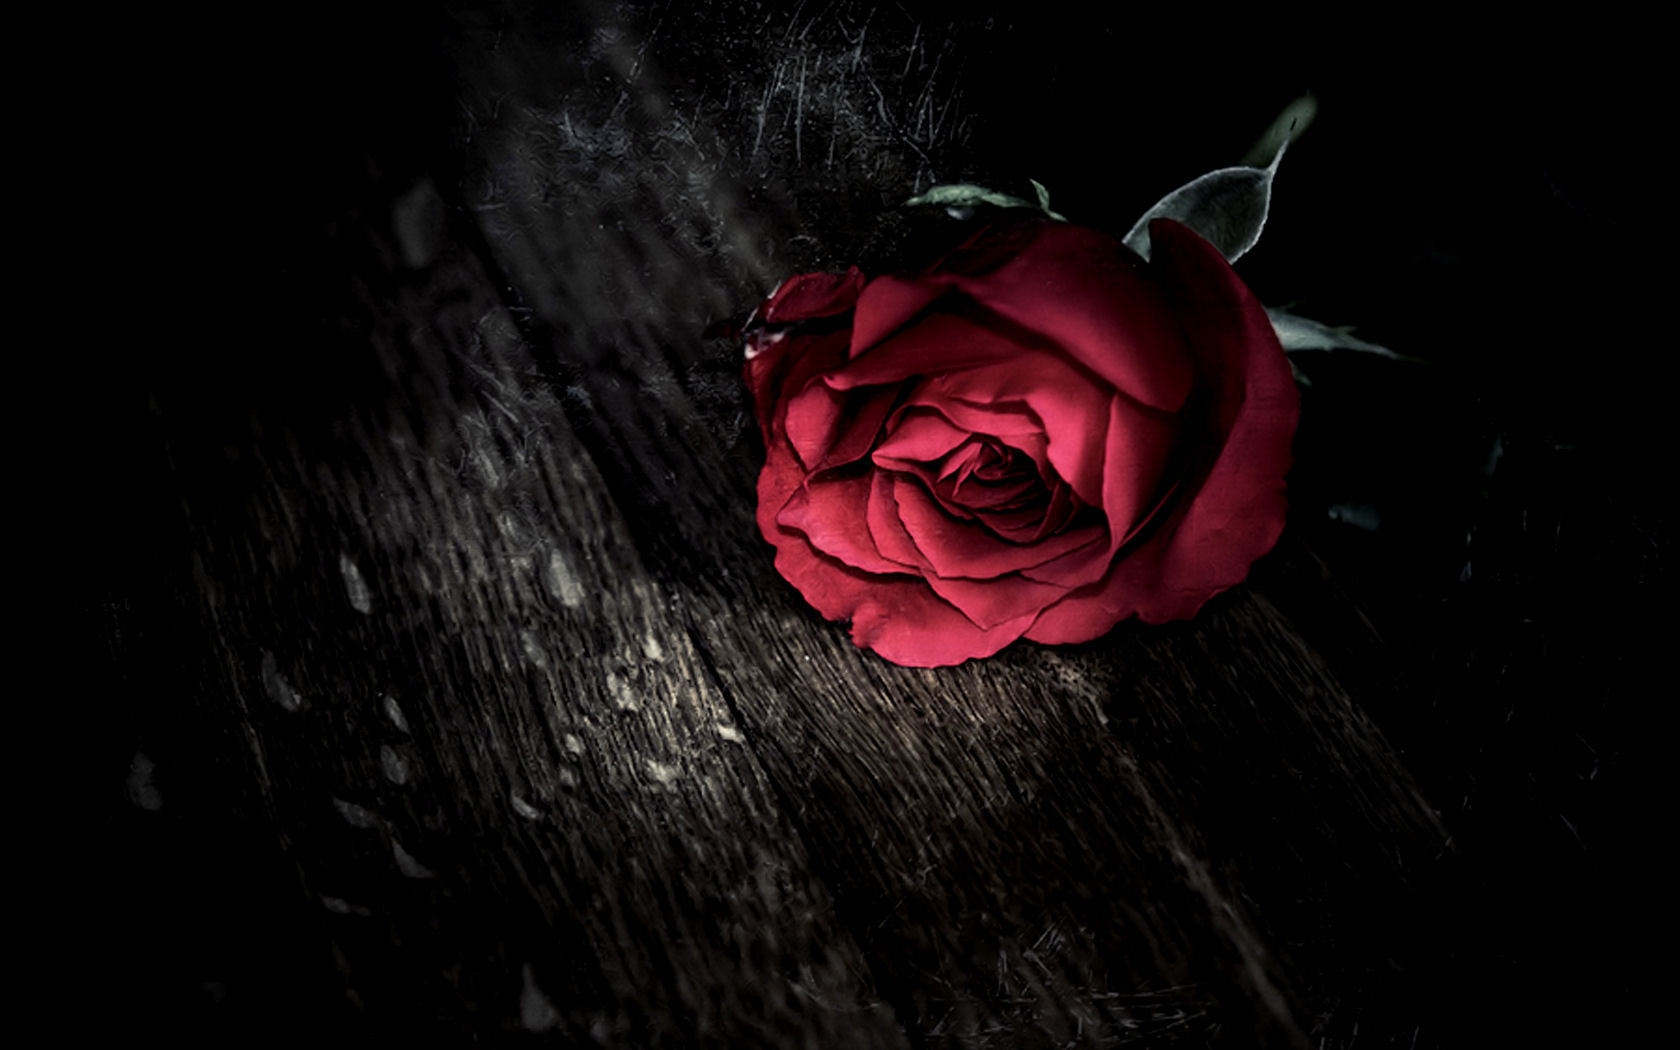 cool-rose-HD-Download-cool-rose-Download-cool-rose-HD-Download-wallpaper-wp3404200